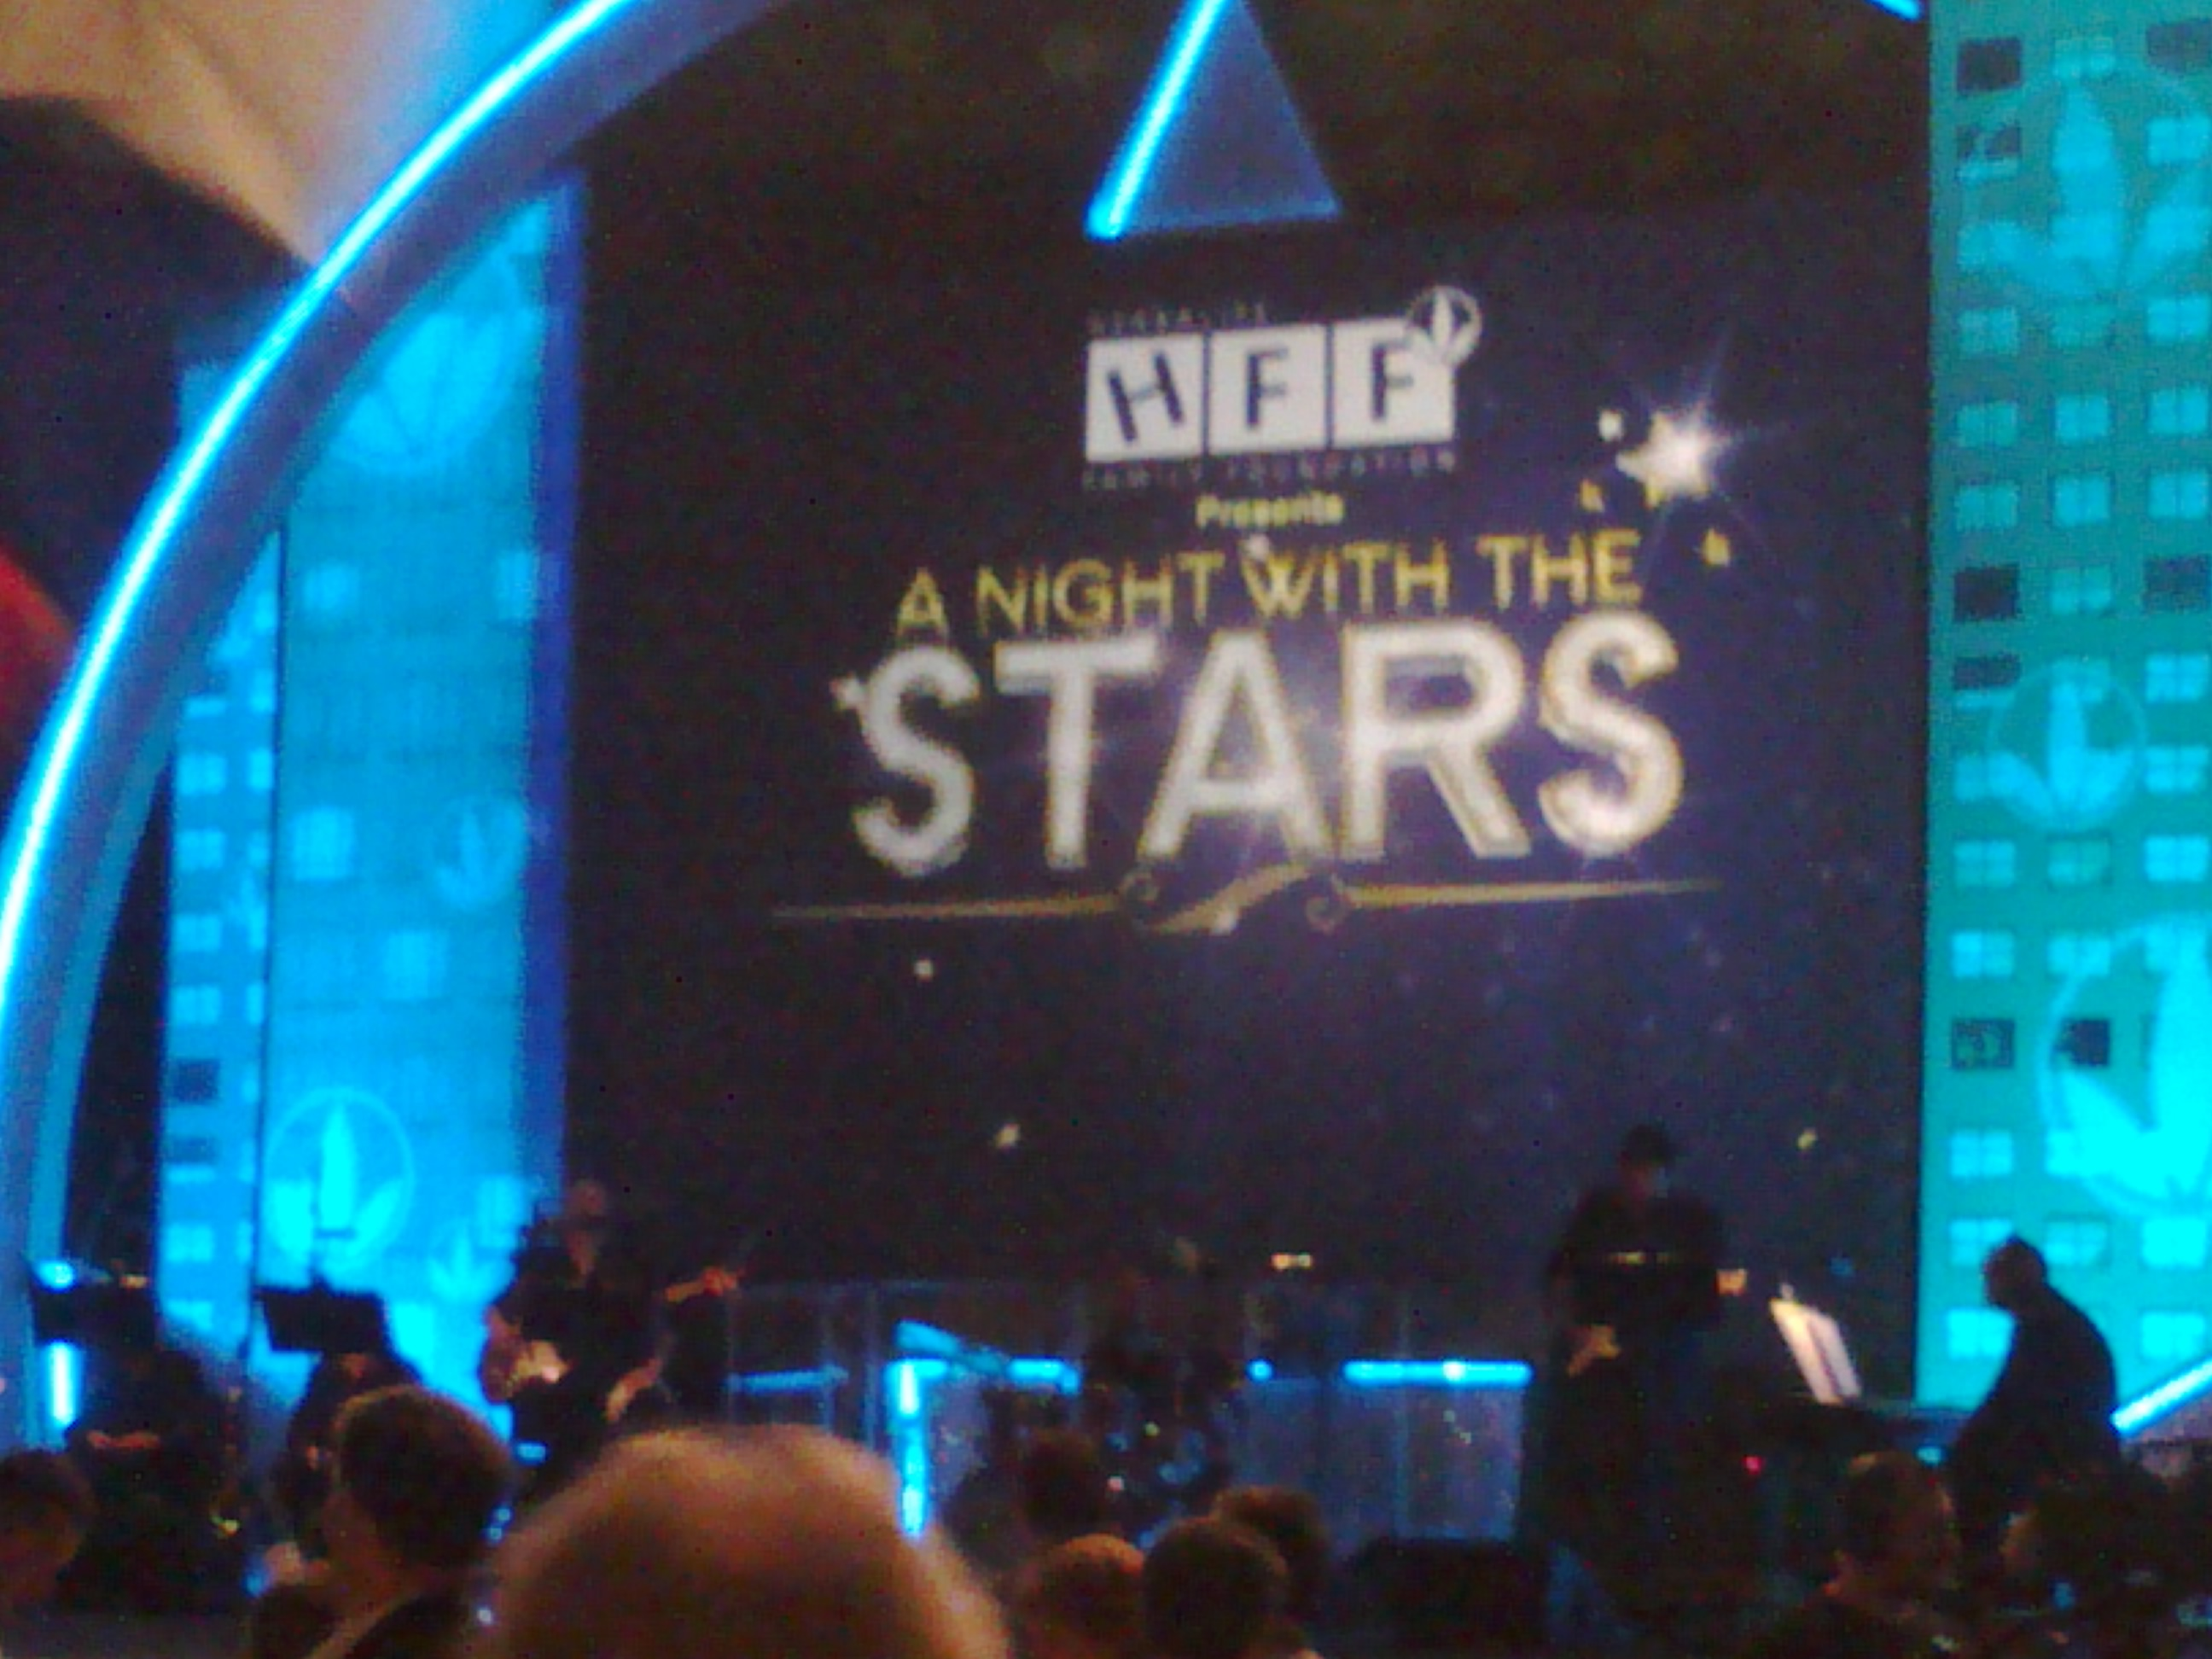 A night with the stars- Extravaganza